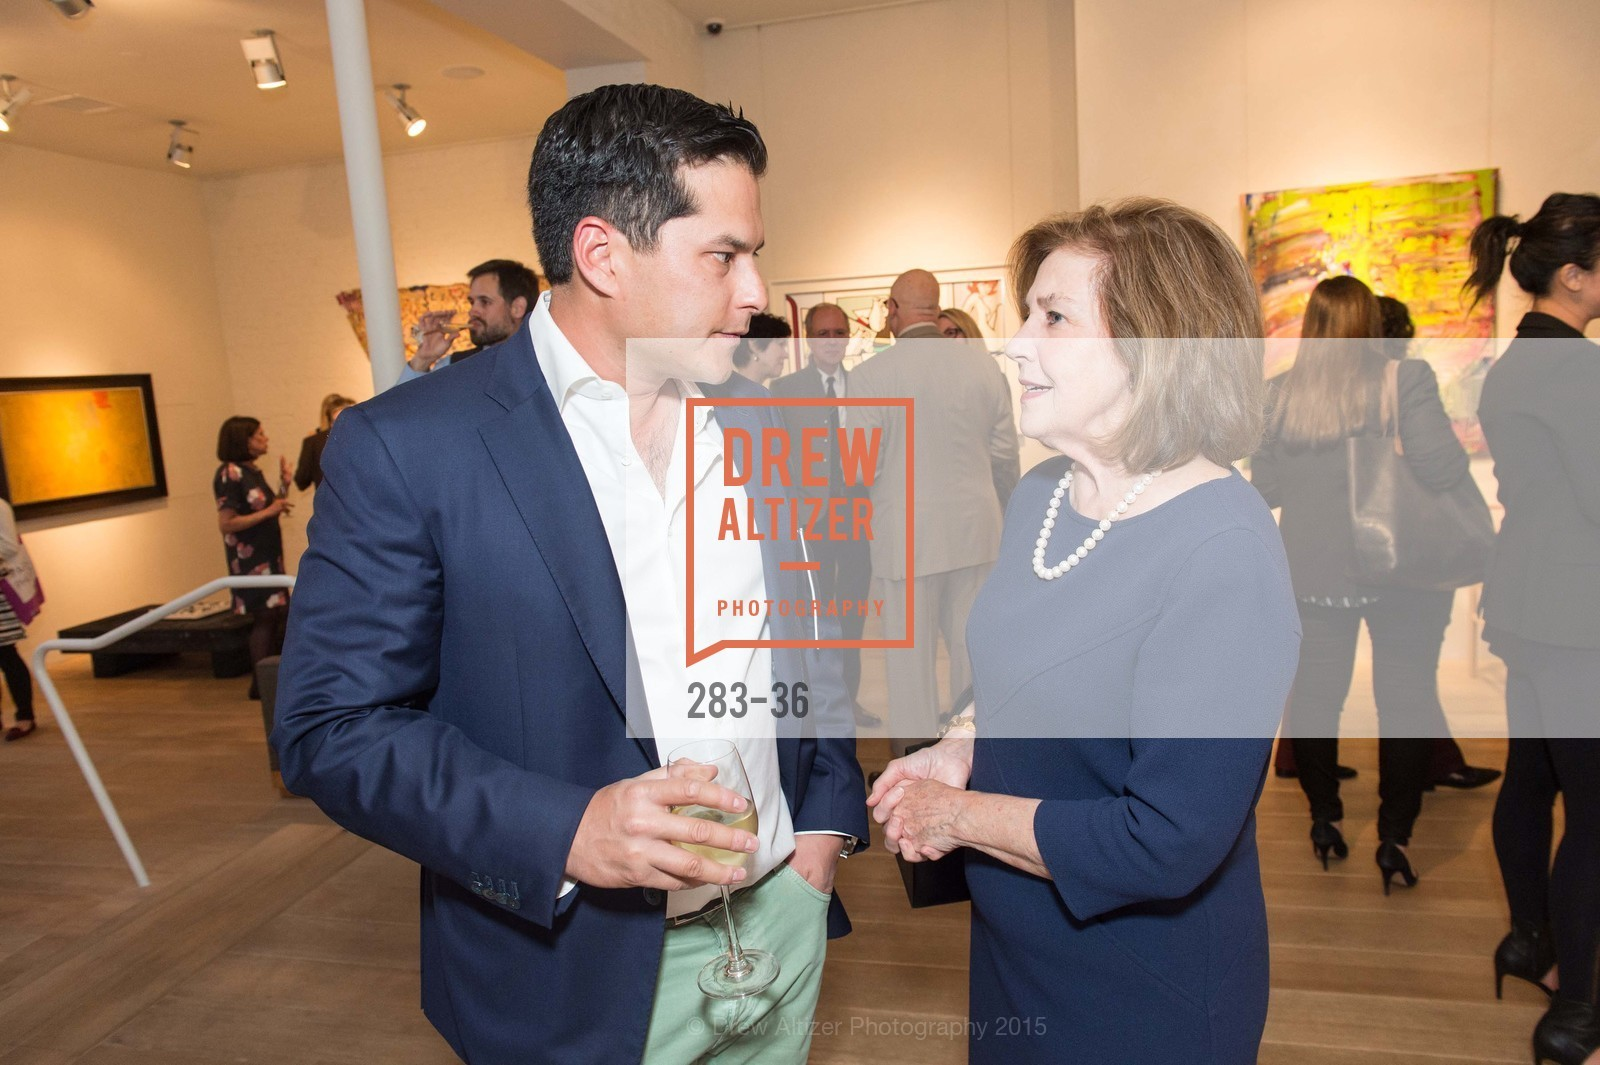 Hsu, Gretchen Berggruen, Post War and Contemporary preview at Hedge Gallery , Hedge Gallery. 501 Pacific Ave, San Francisco, CA 94133, April 16th, 2015,Drew Altizer, Drew Altizer Photography, full-service agency, private events, San Francisco photographer, photographer california